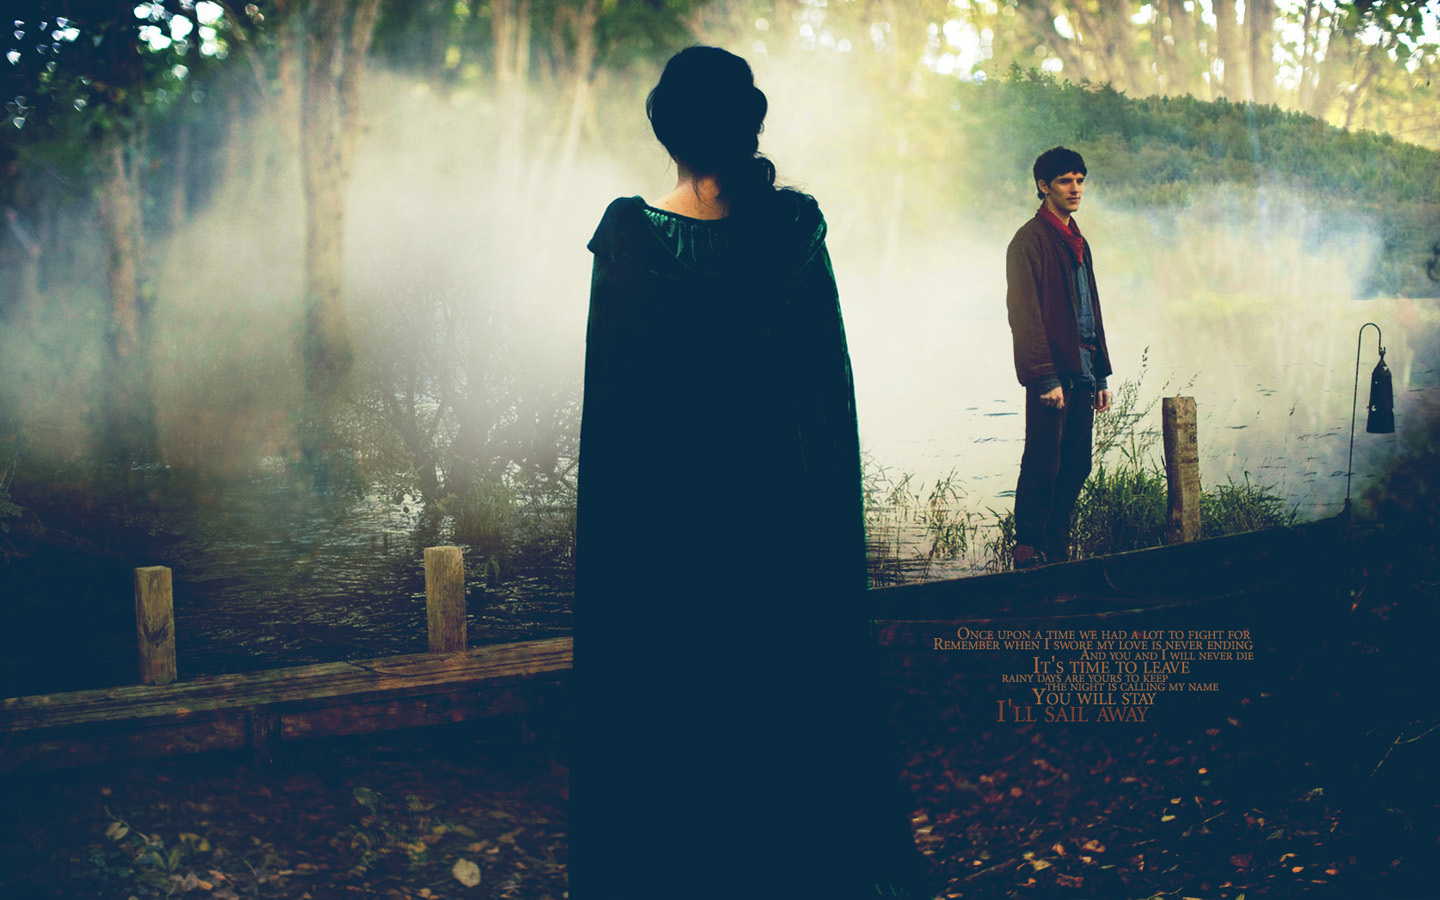 Merlin And Morgana Images Merlin Amp Morgana Hd Wallpaper